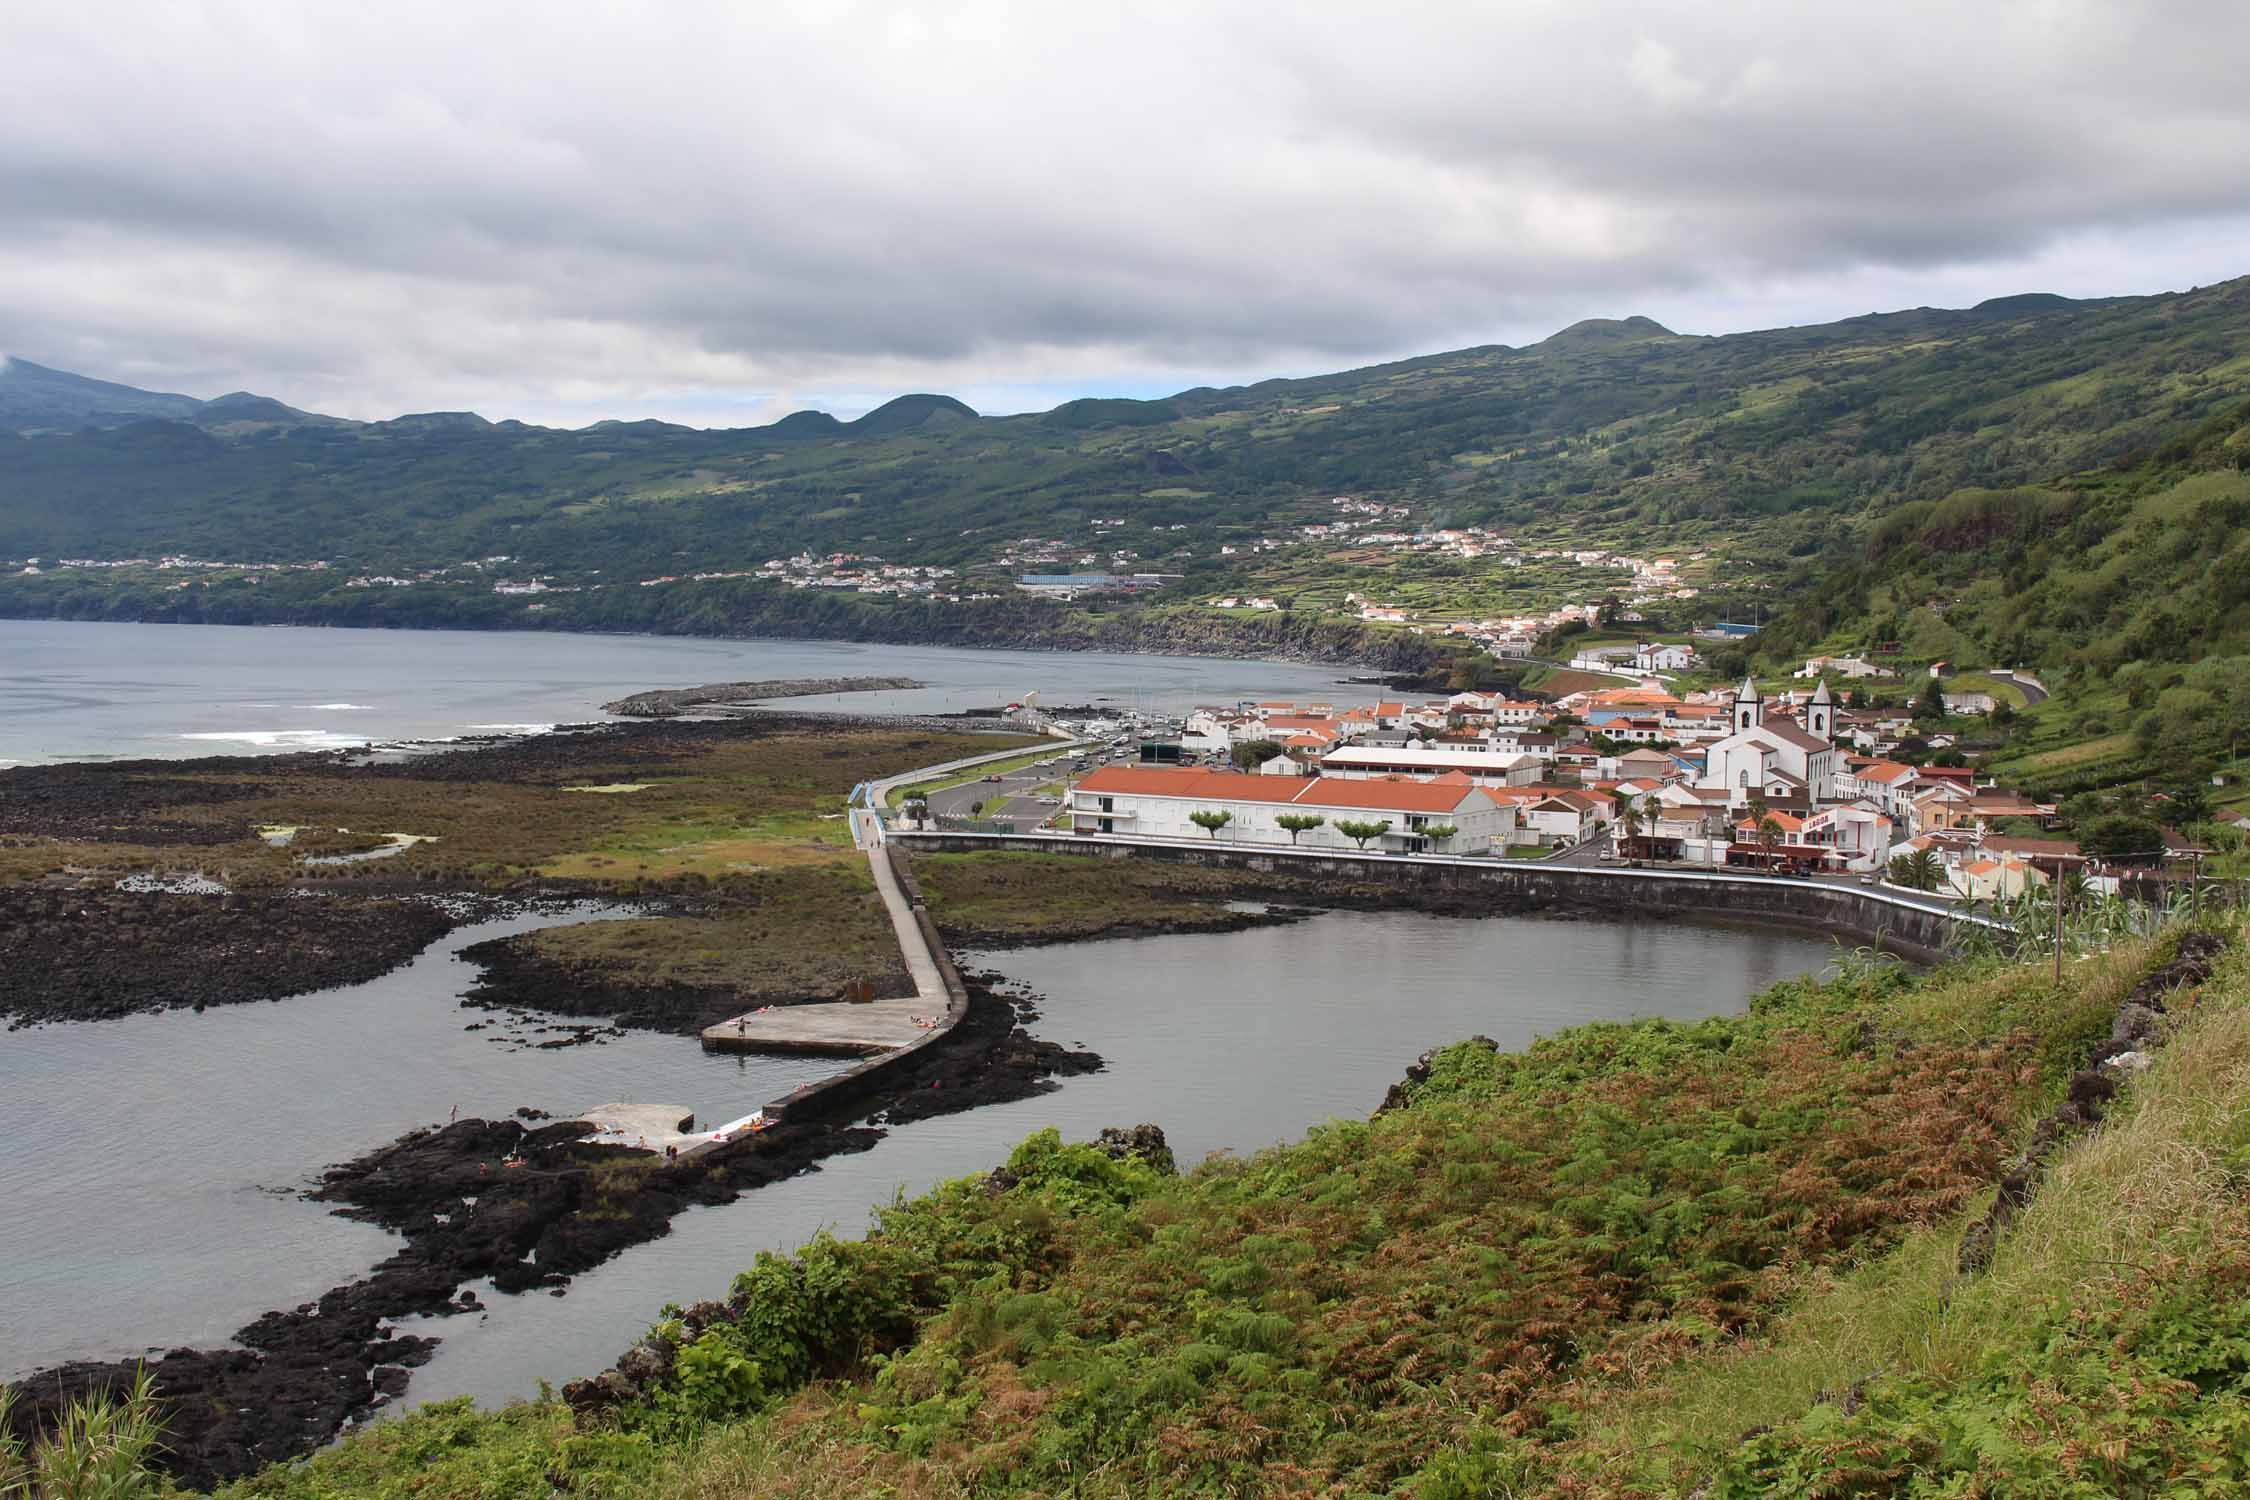 Azores, Pico Island, Lajes do Pico, cliff